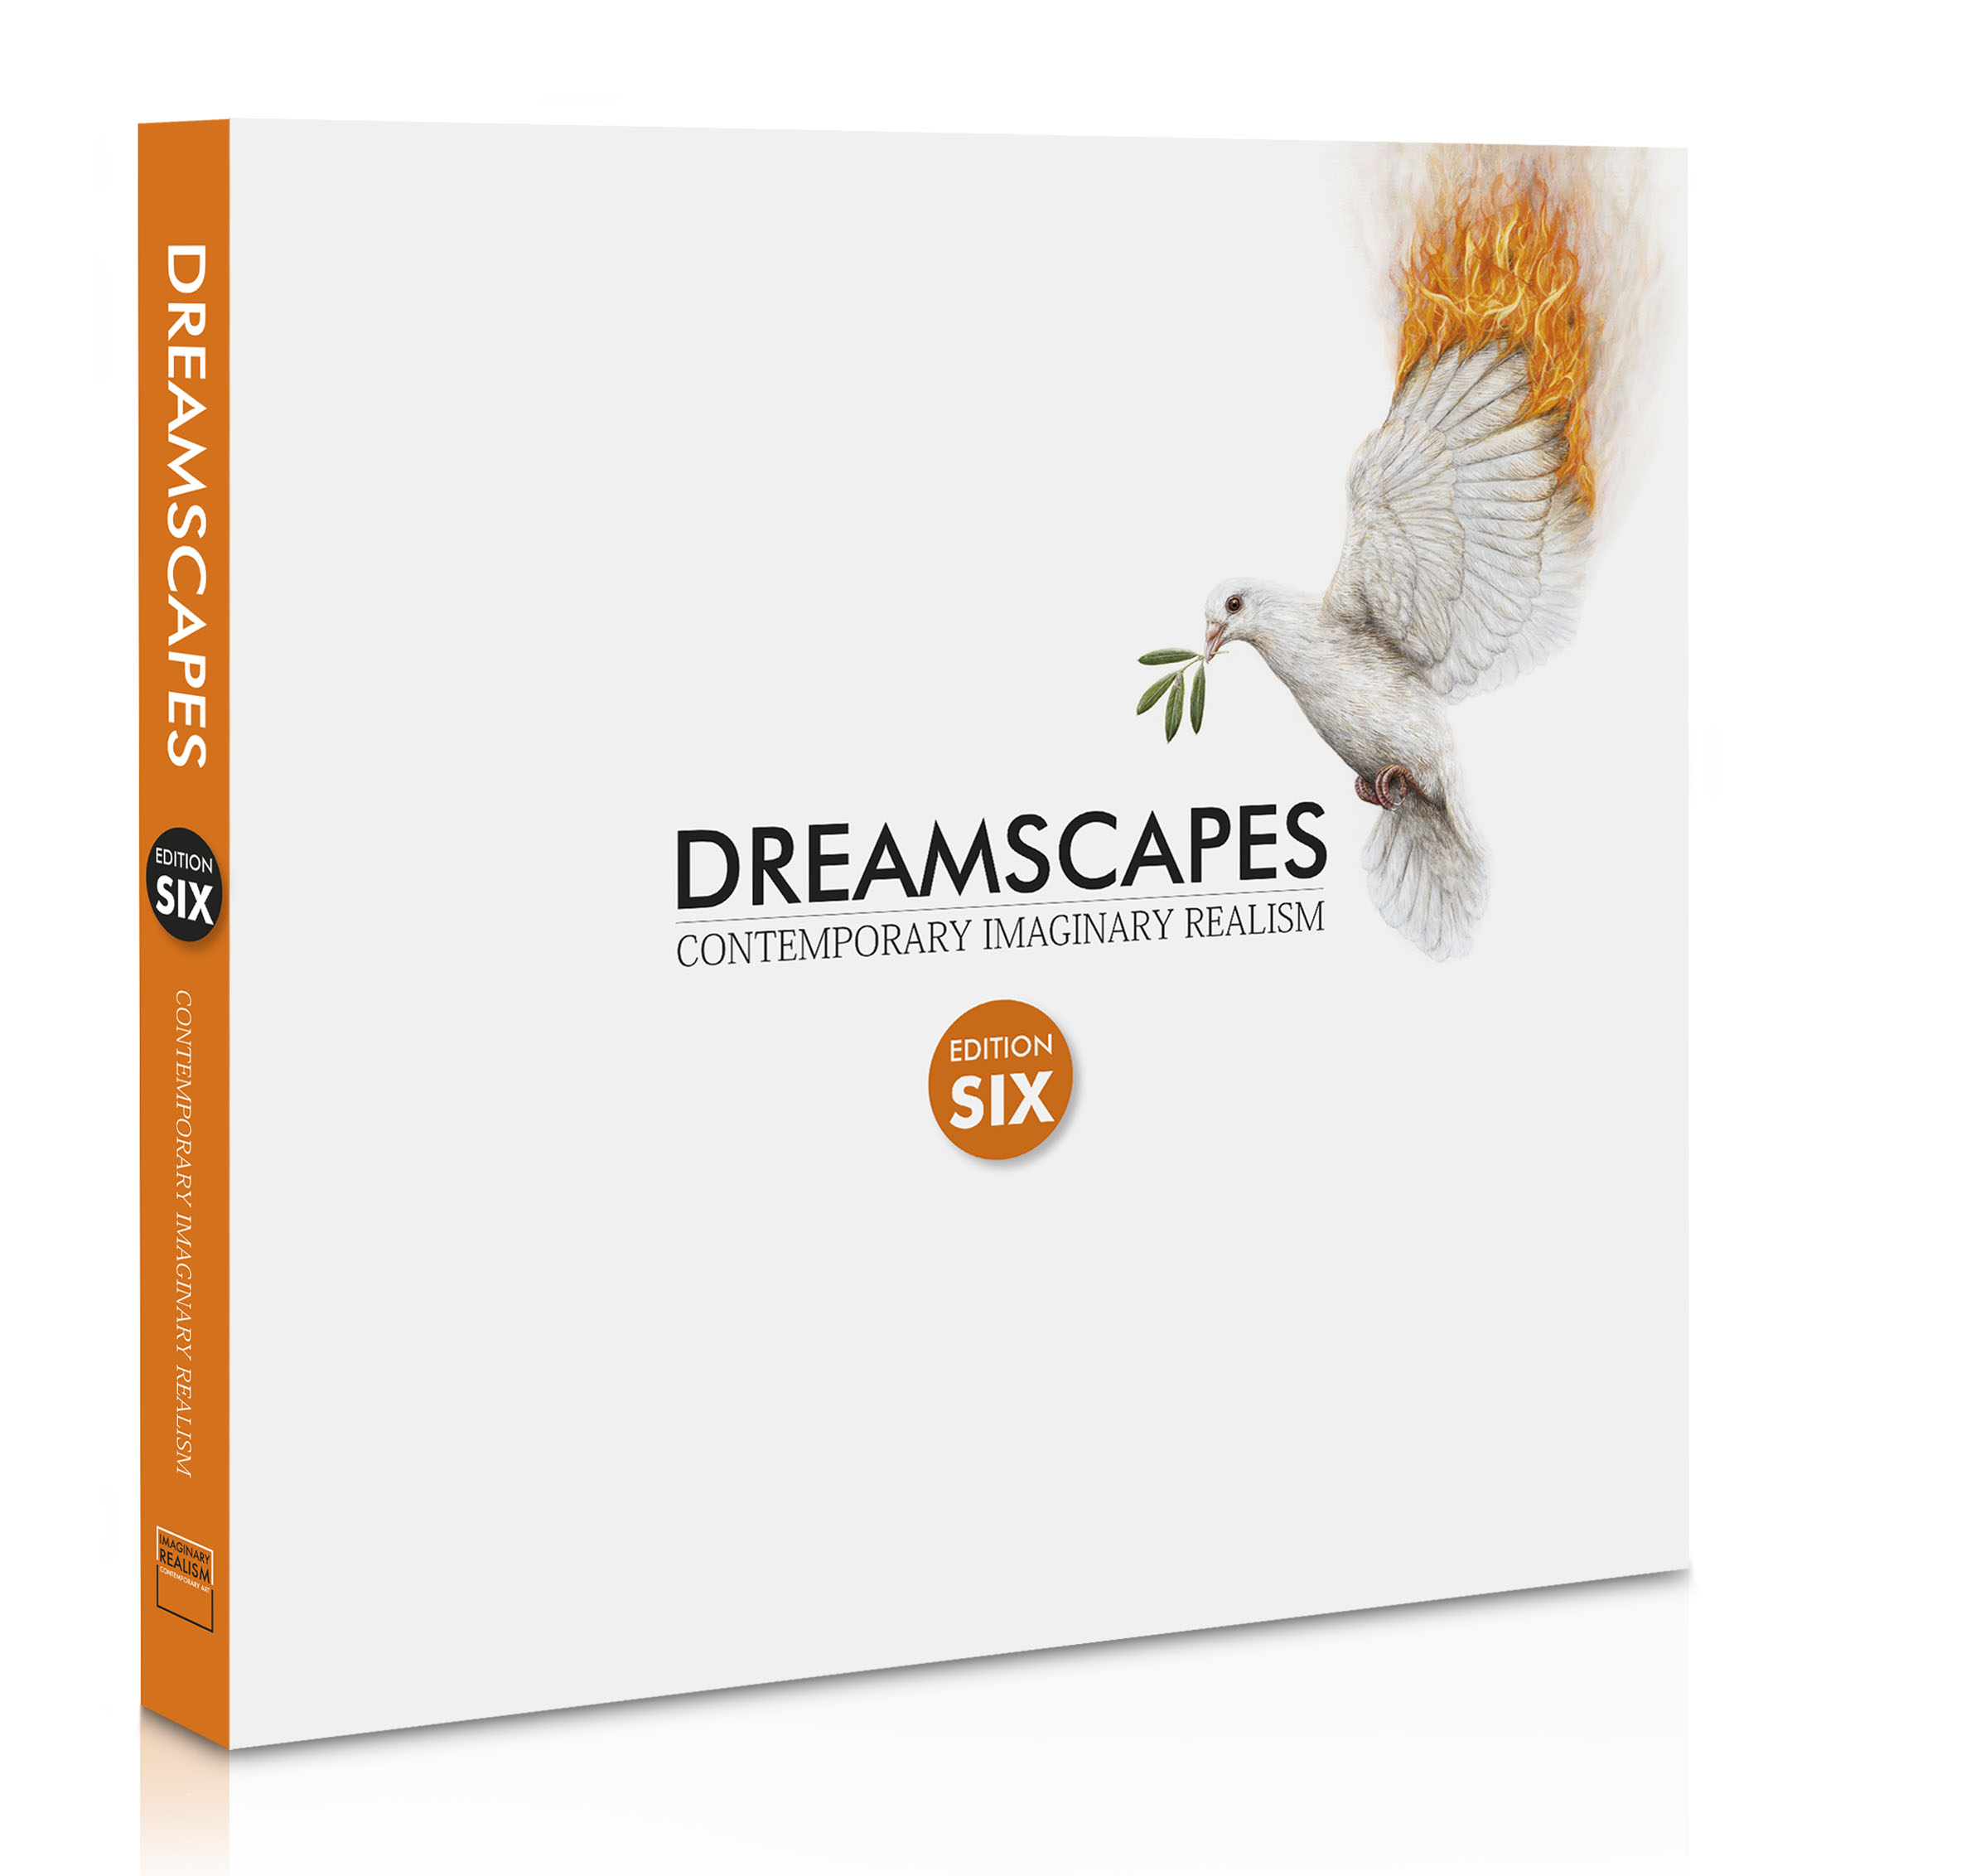 Book Dreamscape 6